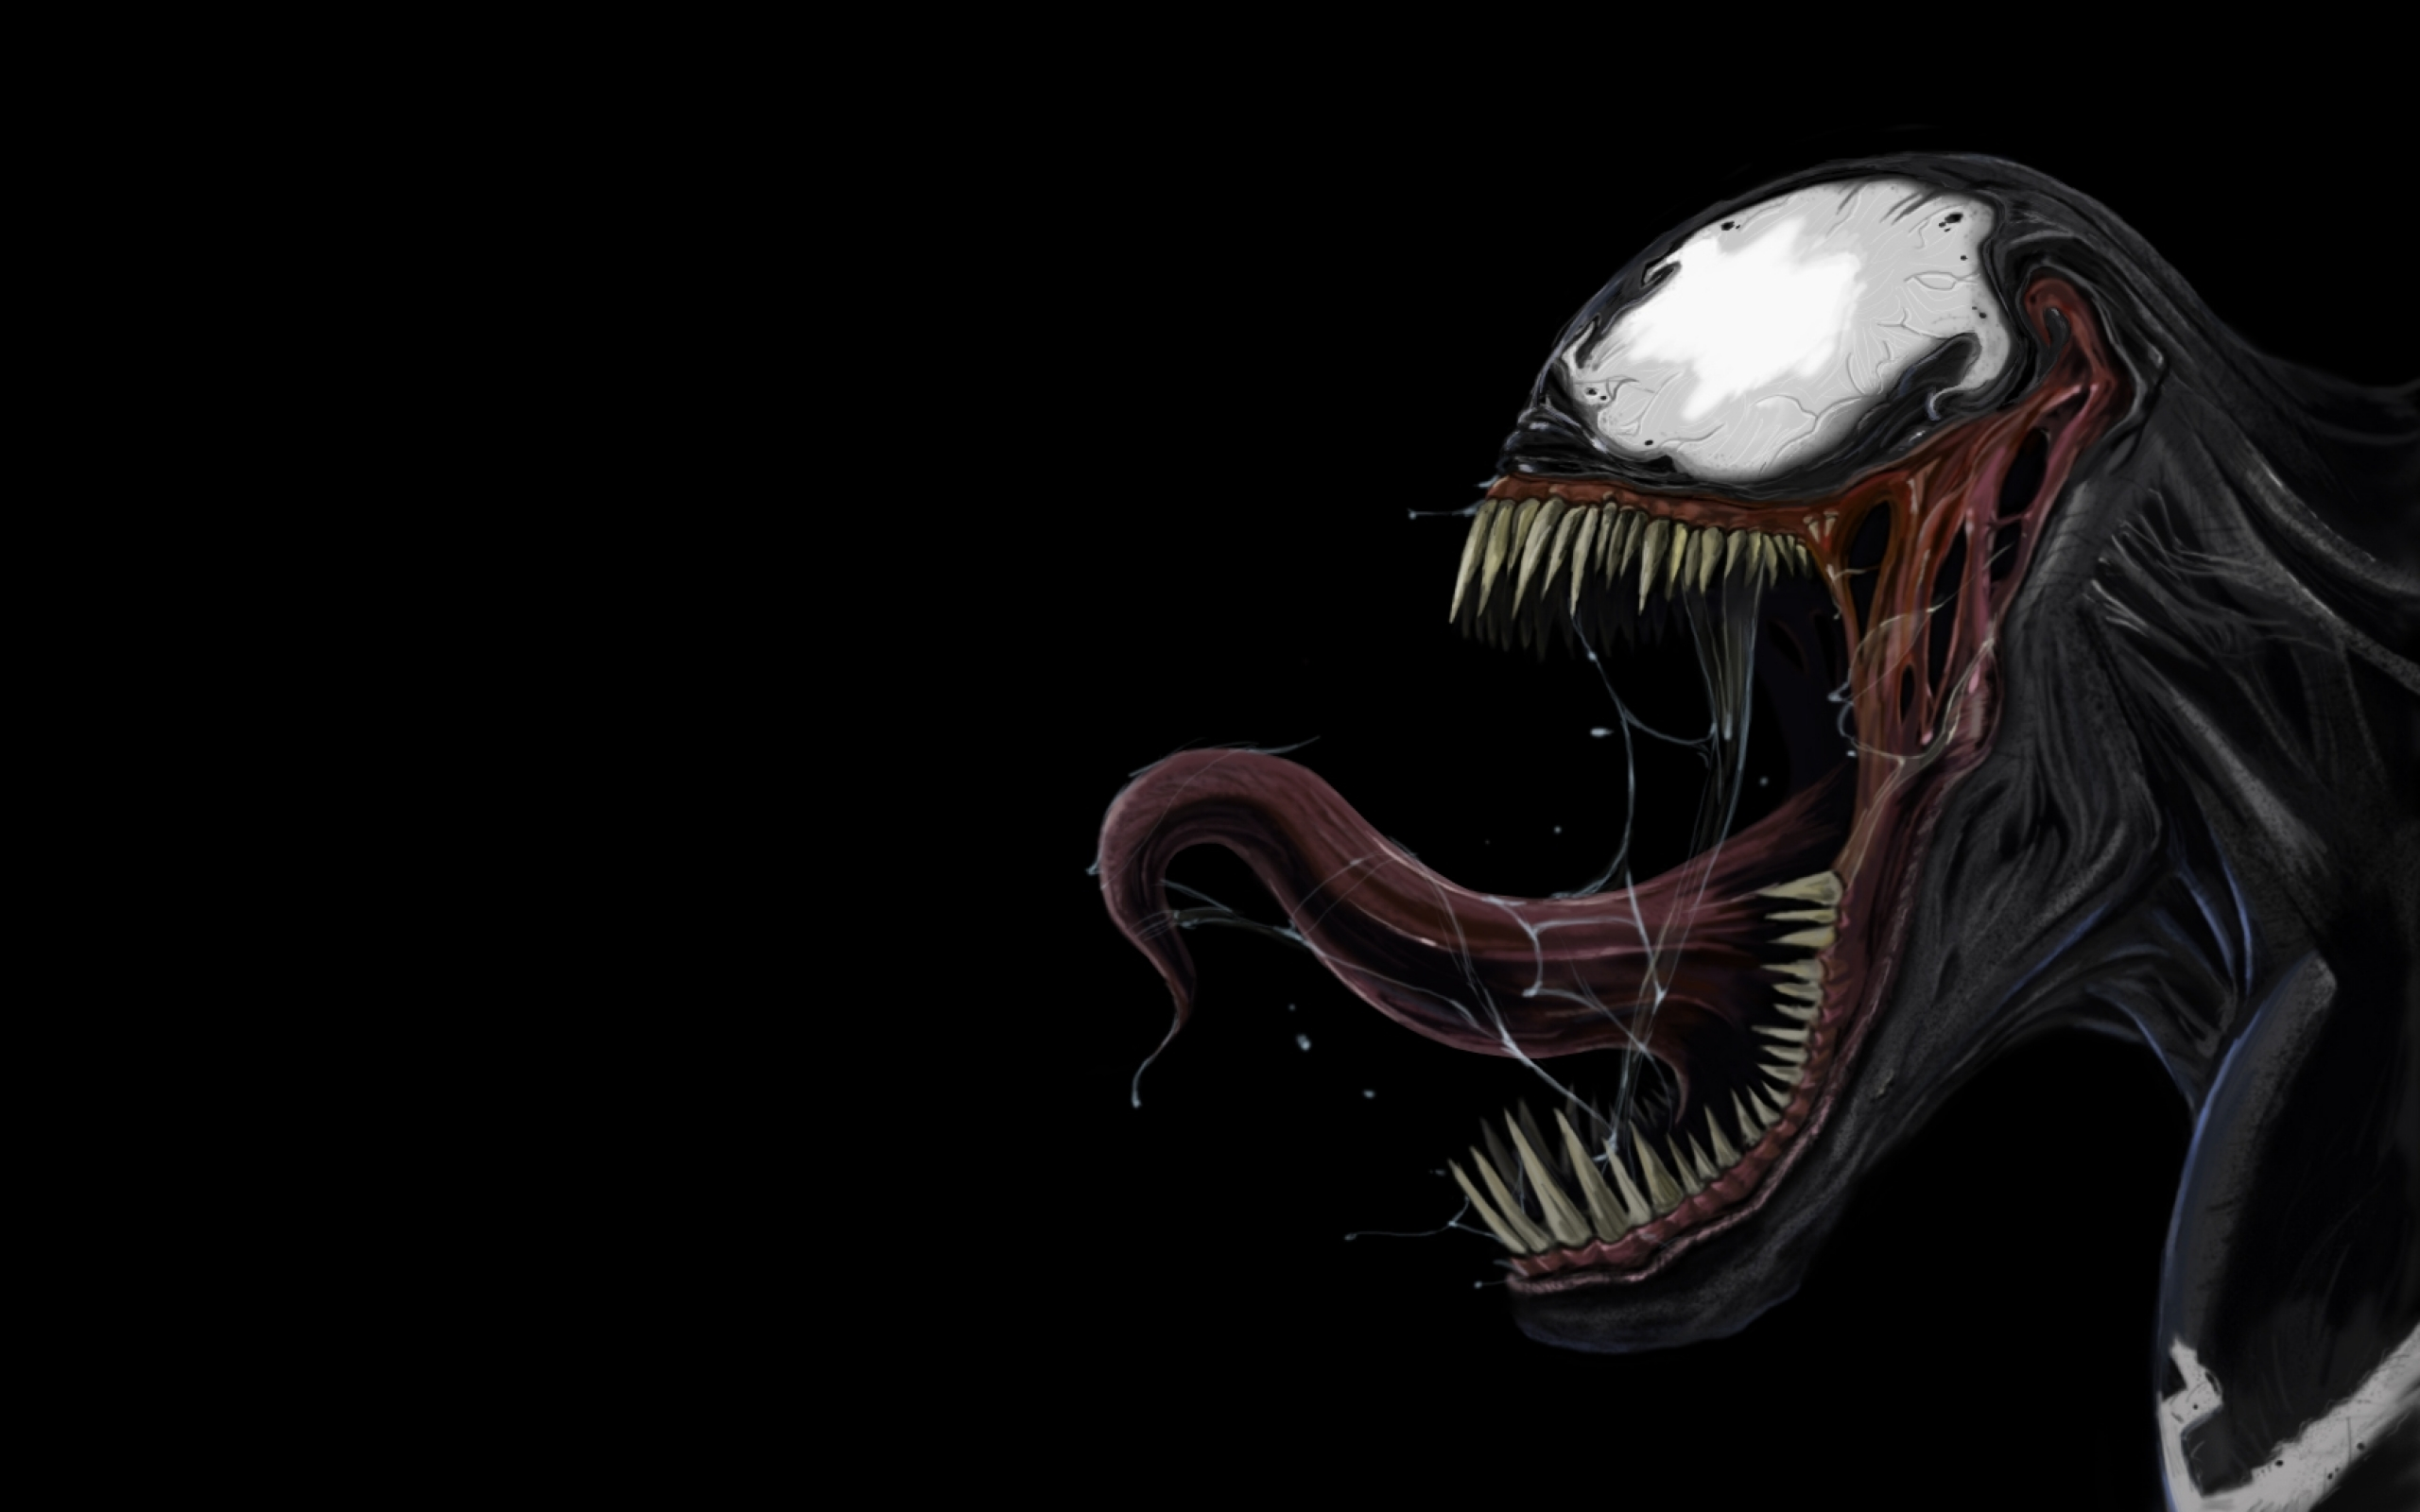 Venom the jester 39 s corner - Venom hd wallpaper android ...